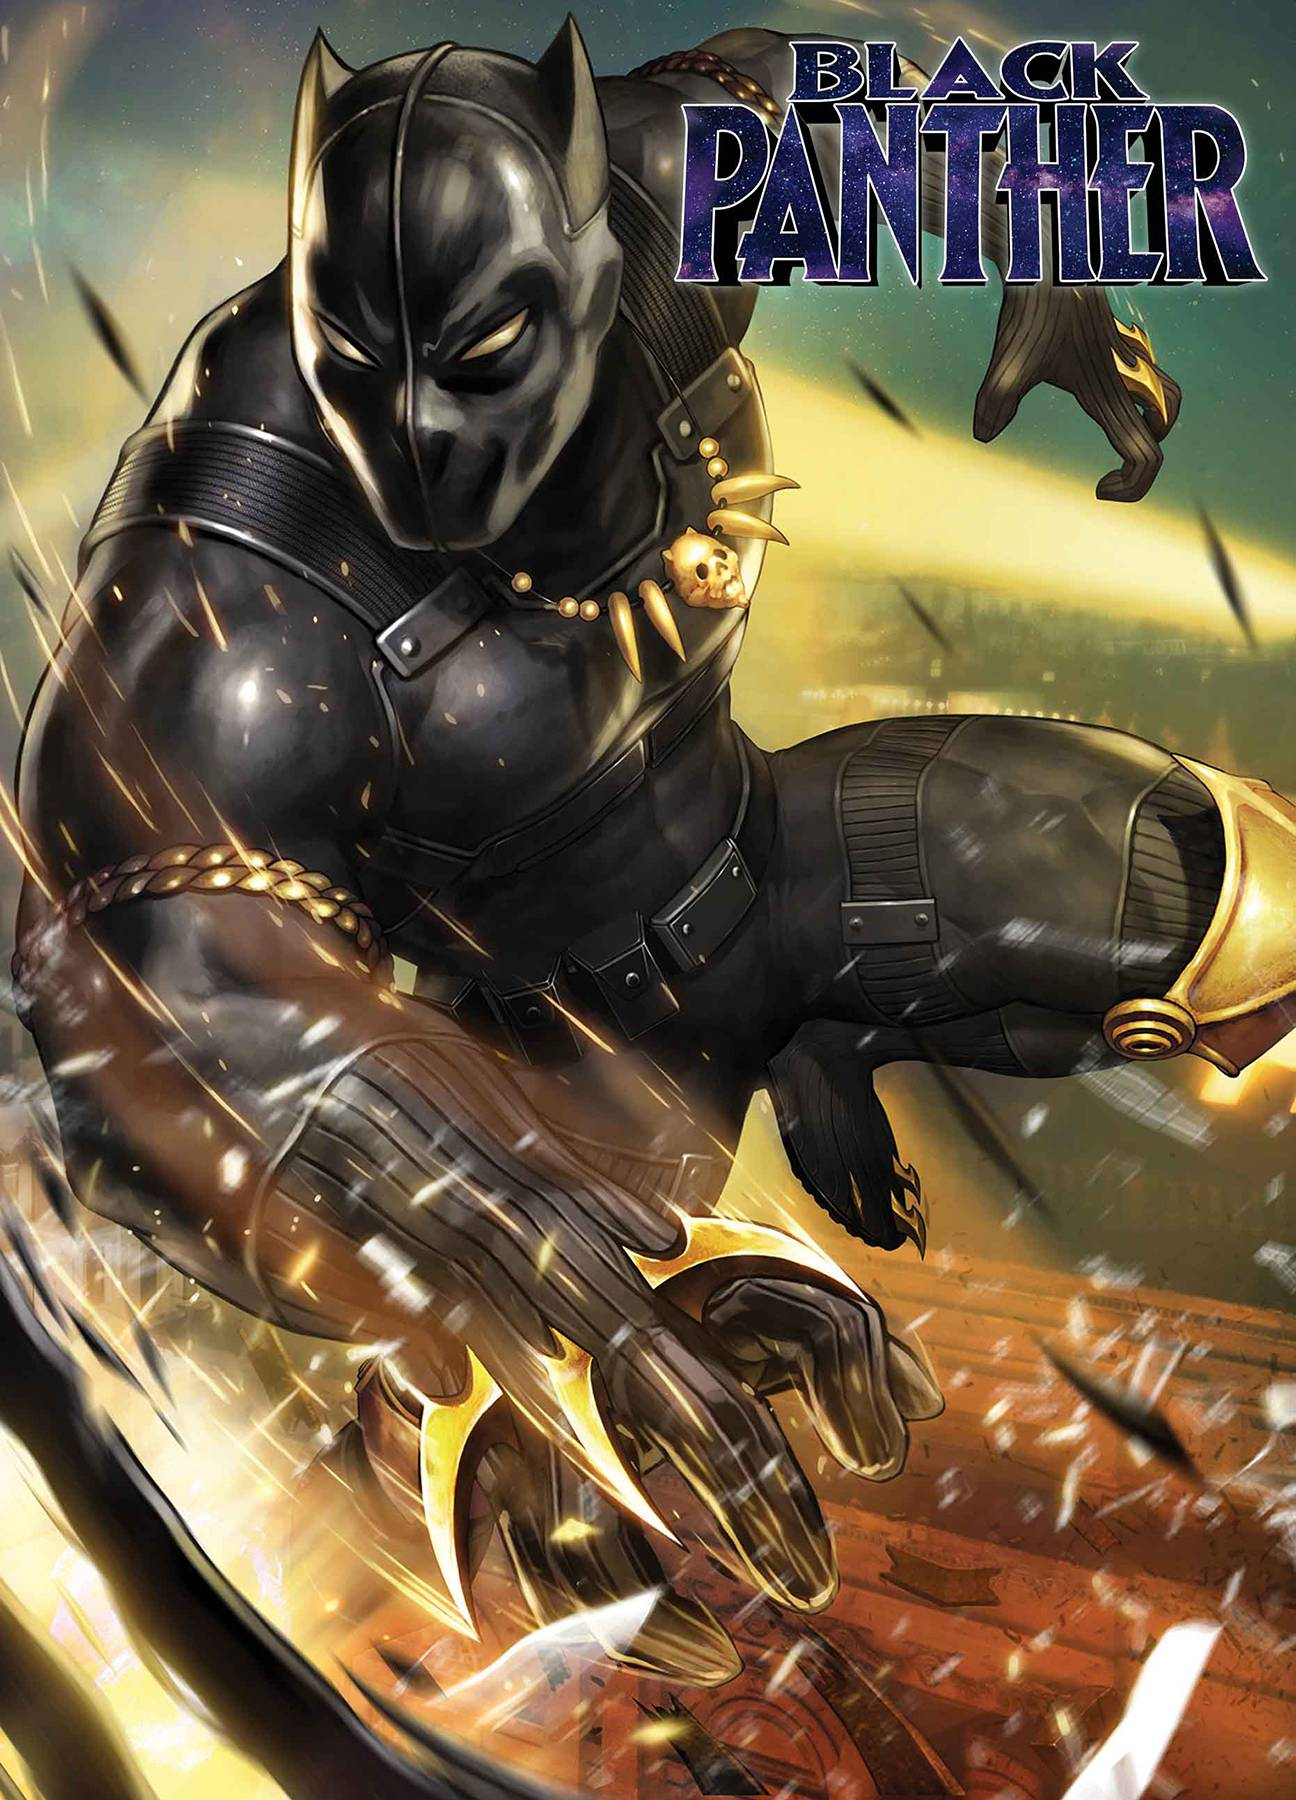 BLACK PANTHER AND AGENTS OF WAKANDA 1 YOON LEE GAME VAR.jpg